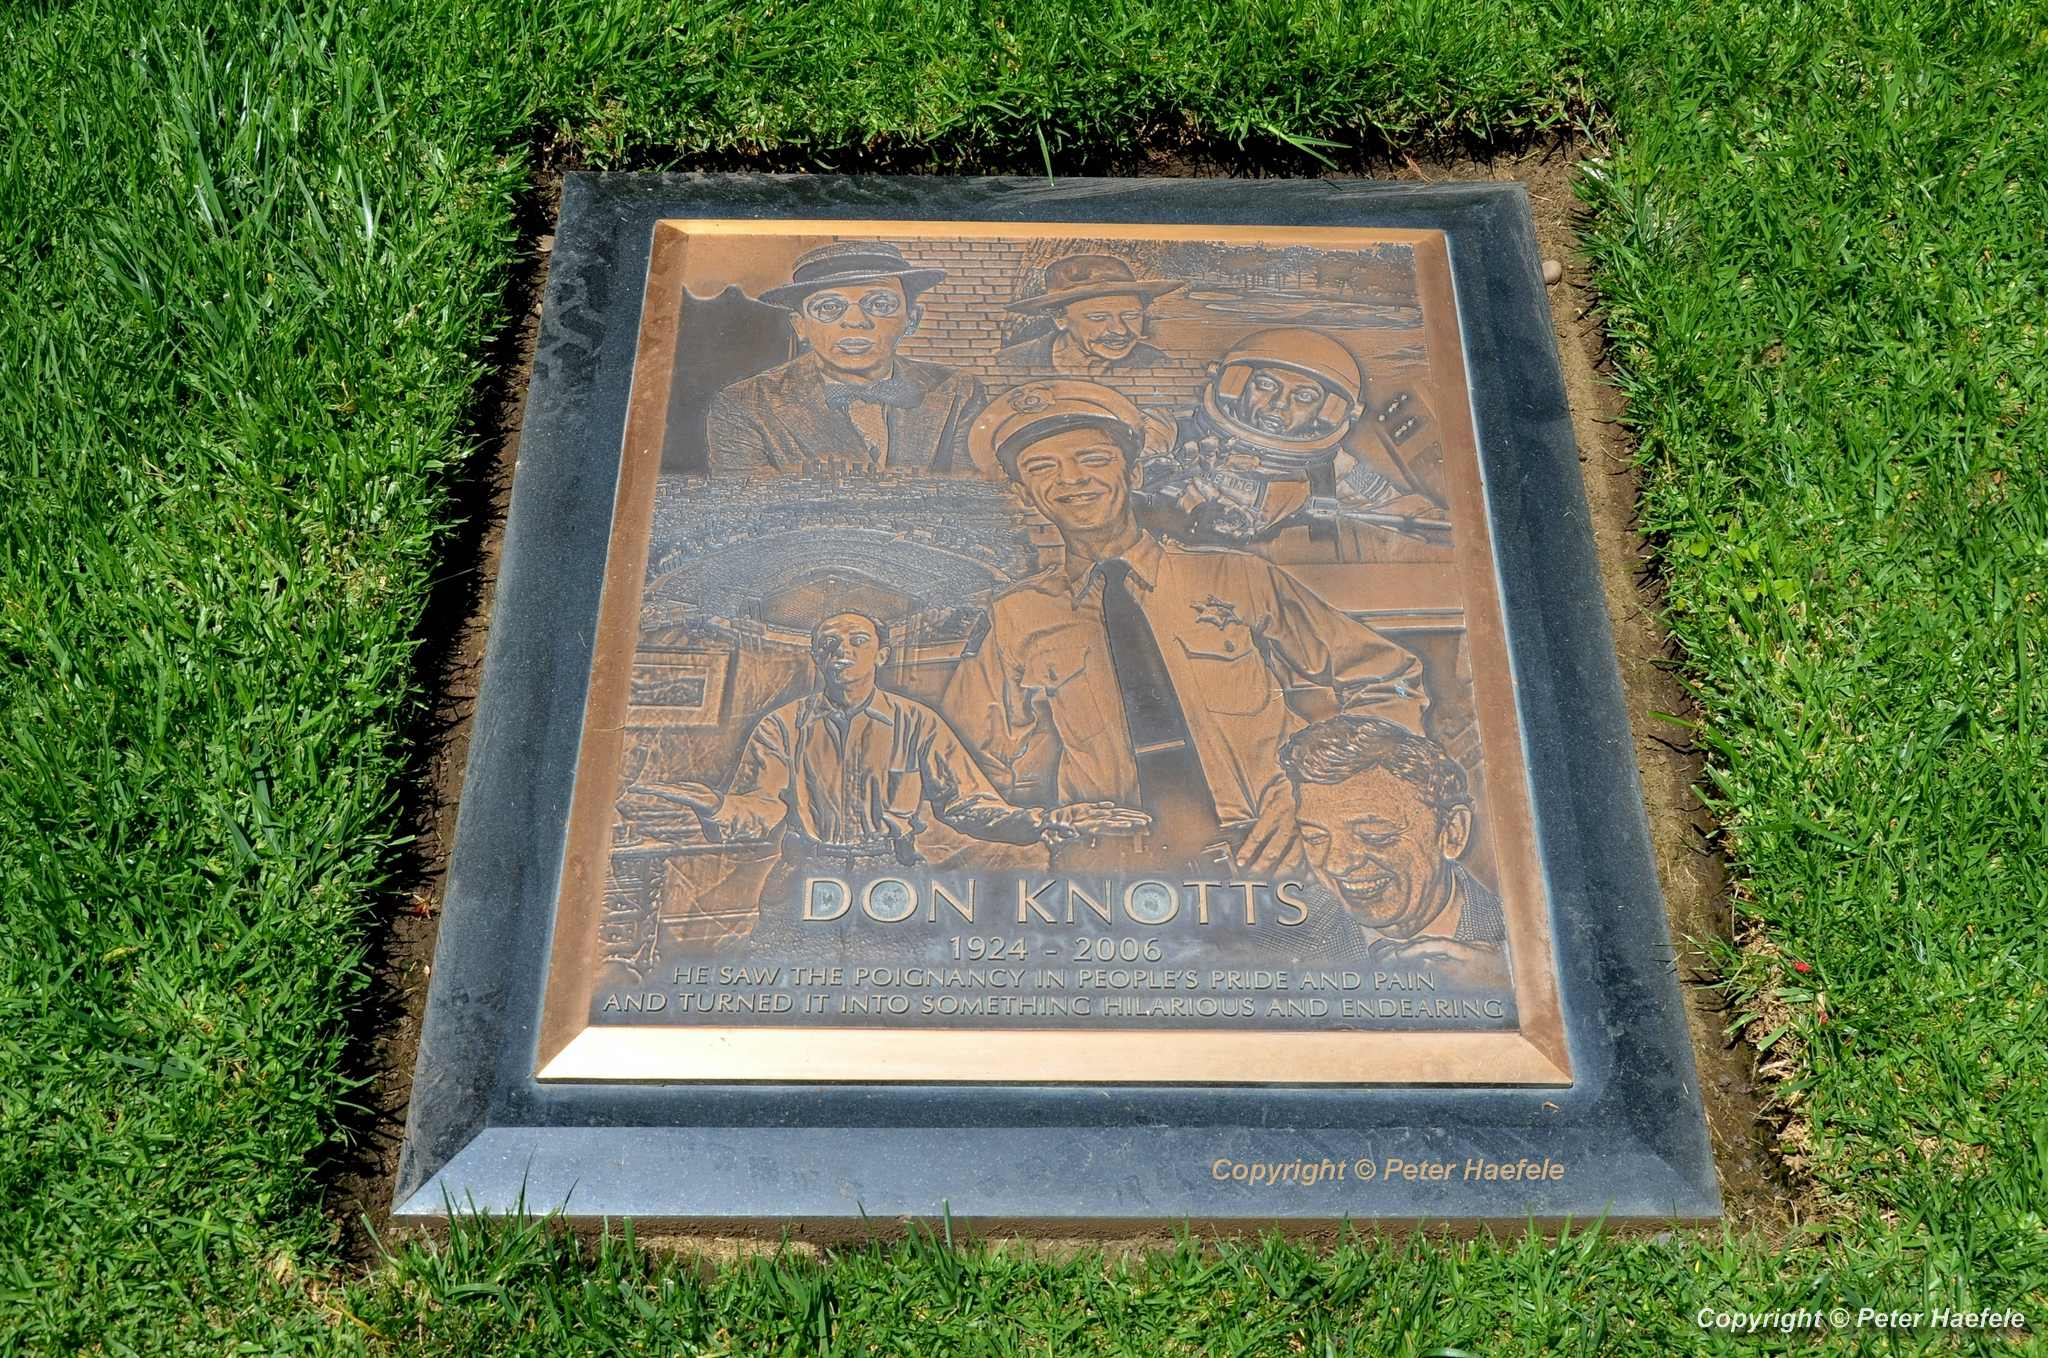 Roadtrip USA - Westwood Village Memorial Park Cemetery - Grave of Don Knotts